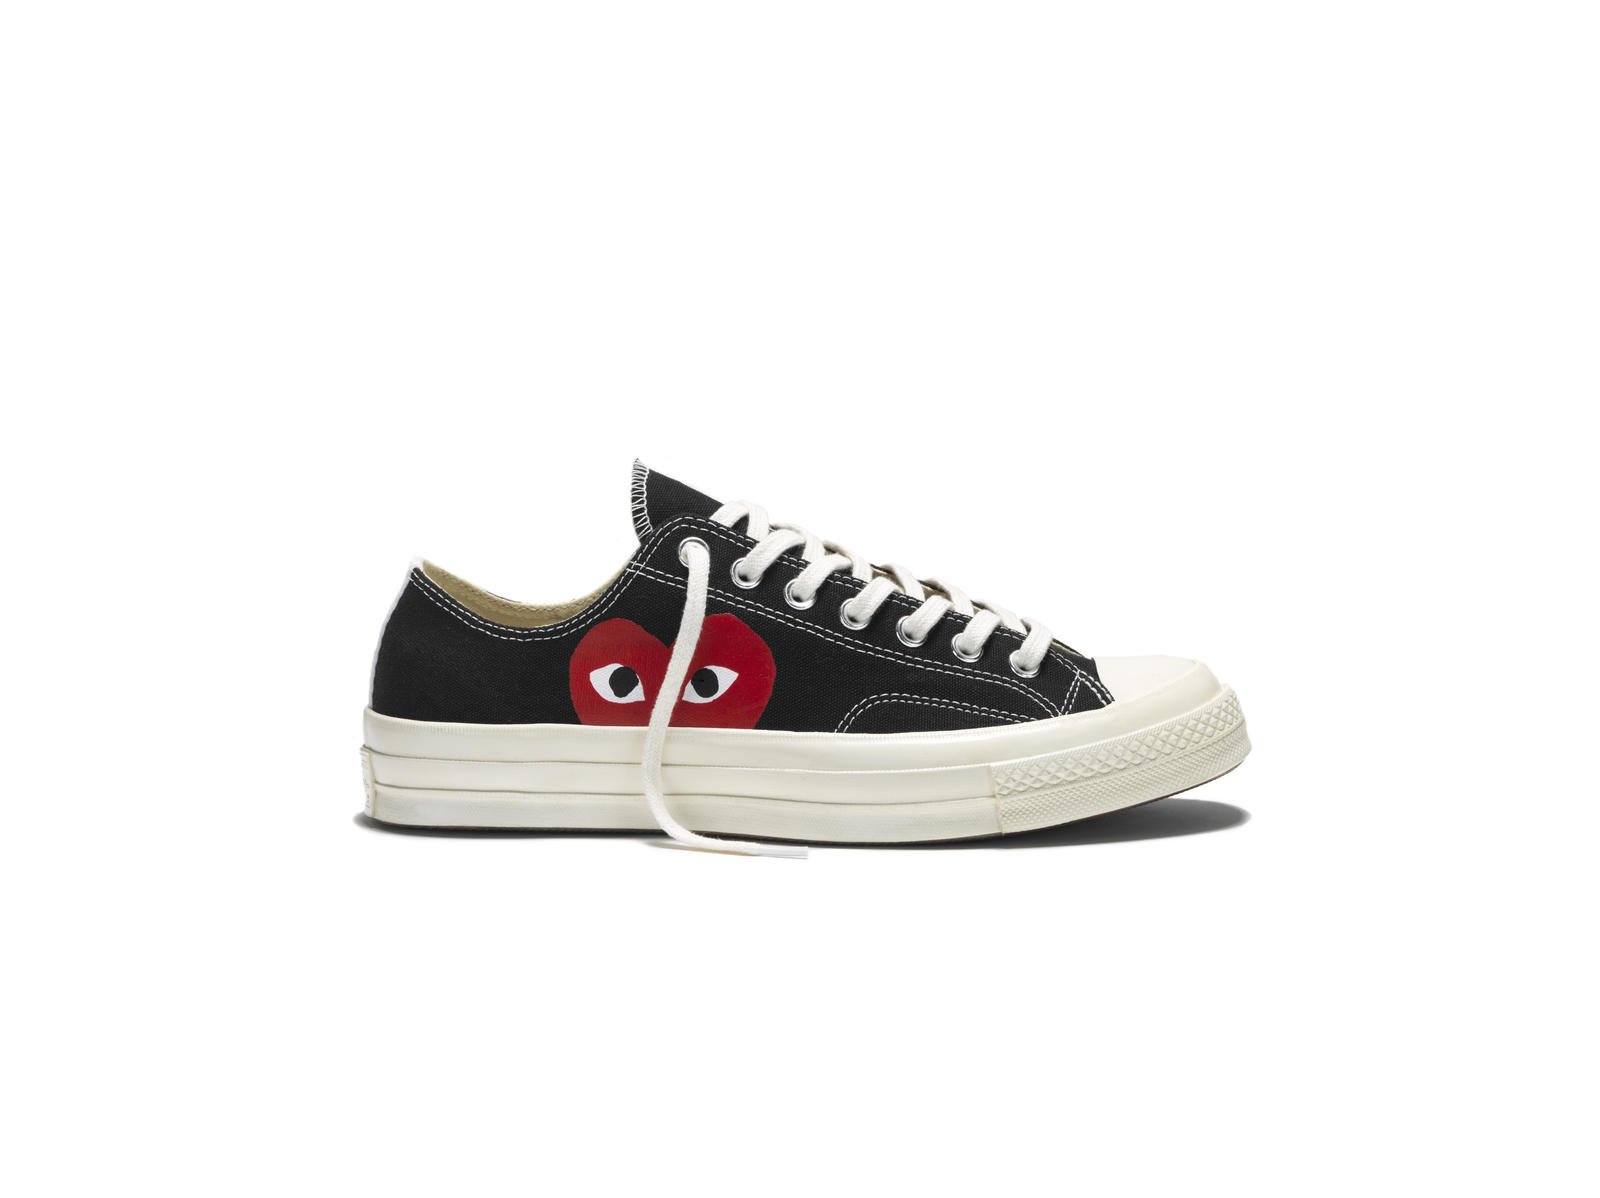 CONVERSE AND COMME DES GARCONS ANNOUNCE NEW PLAY ... | 1600 x 1198 jpeg 66kB